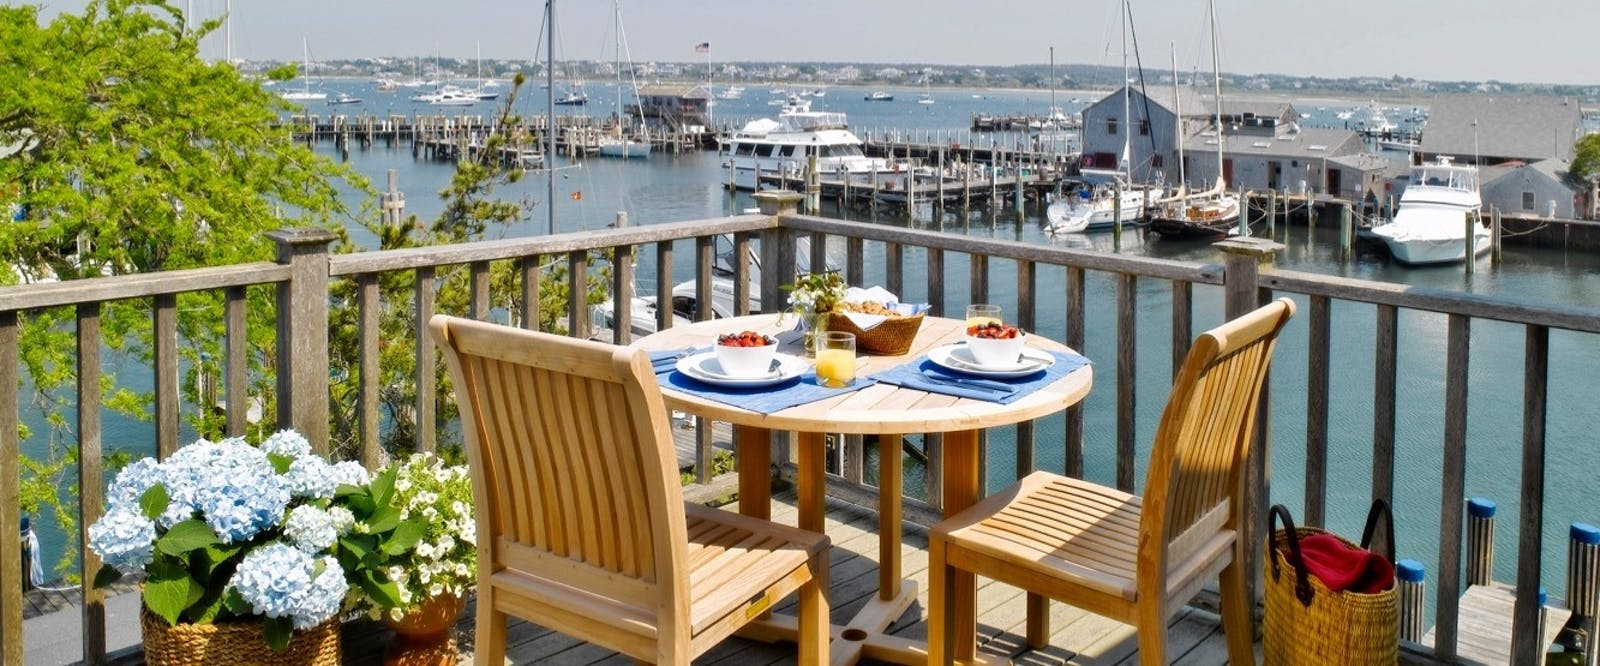 Terrace at the cottages  loft boat basin nantucket